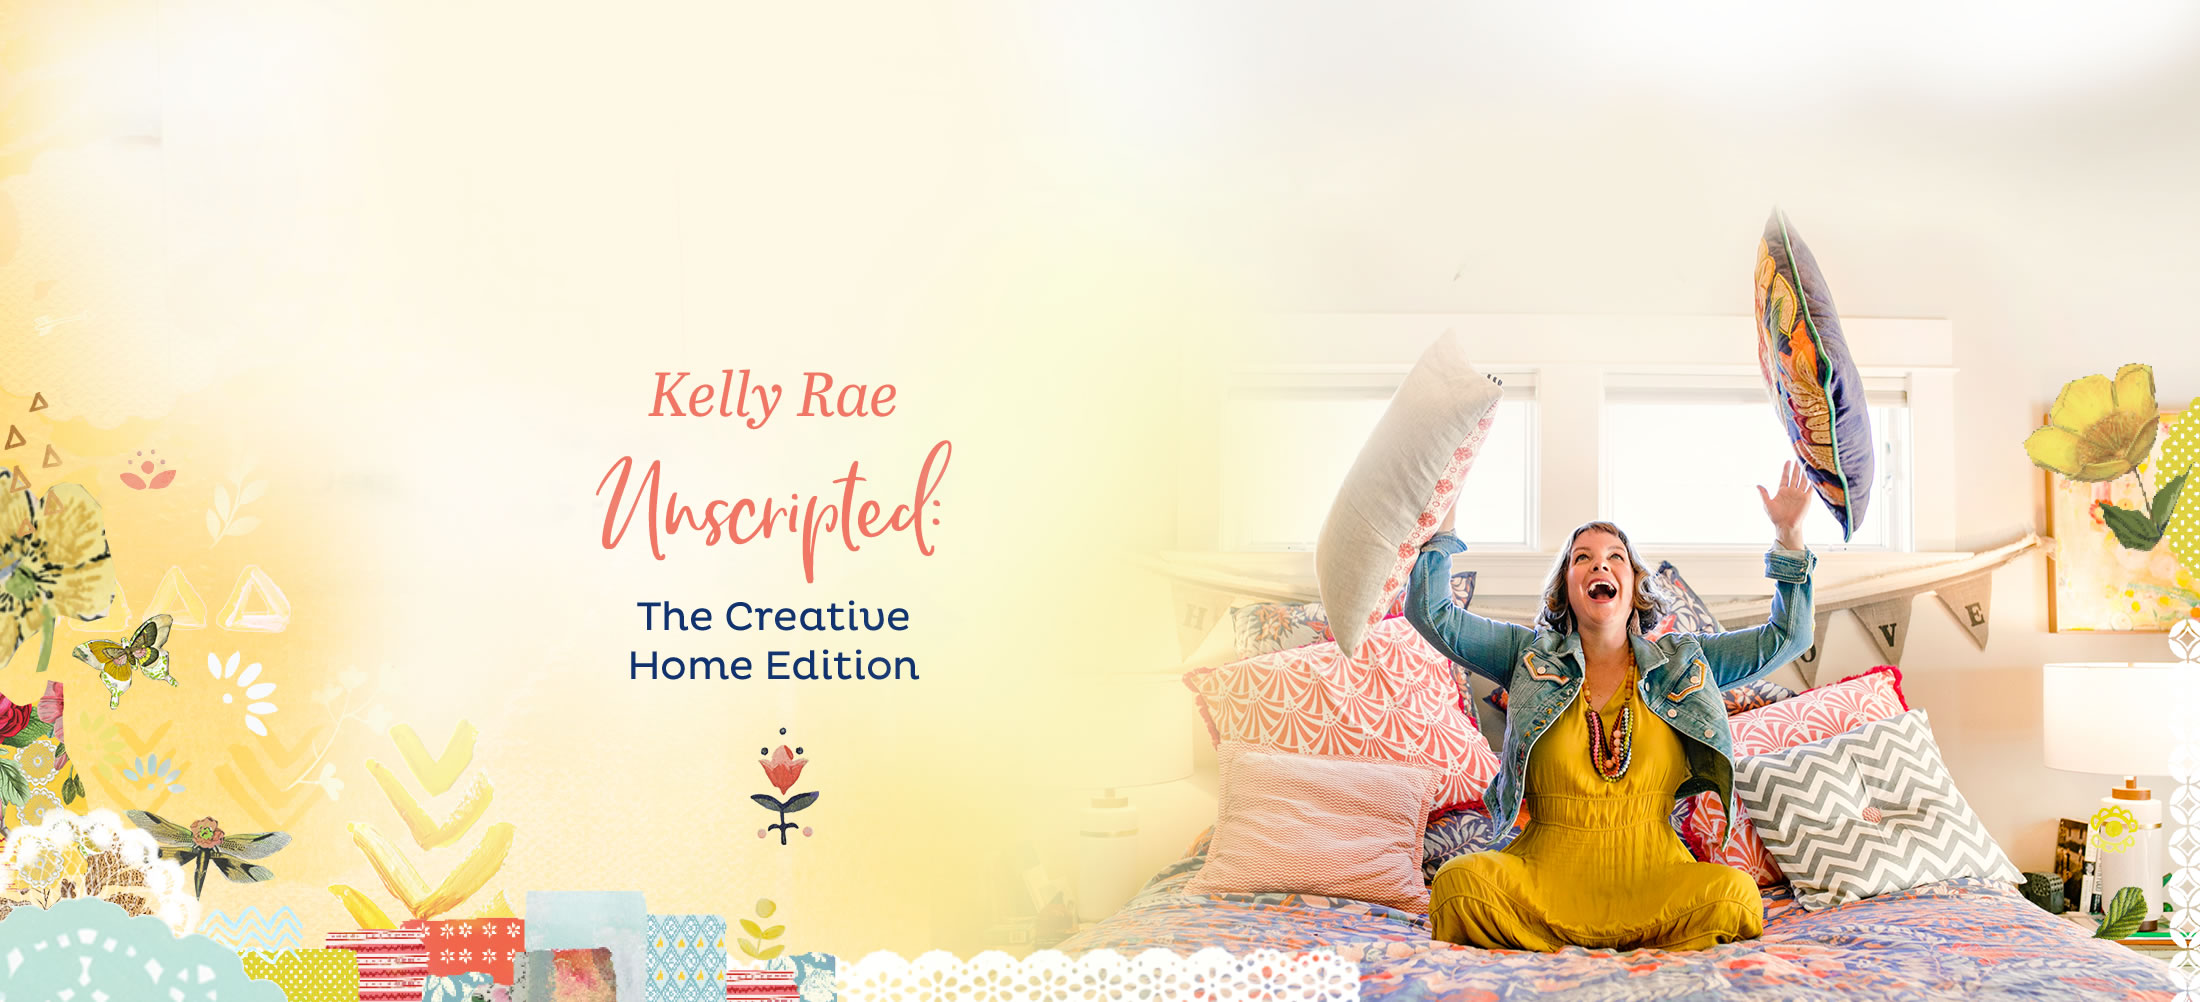 Kelly Rae Unscripted - The Creative Home Edition